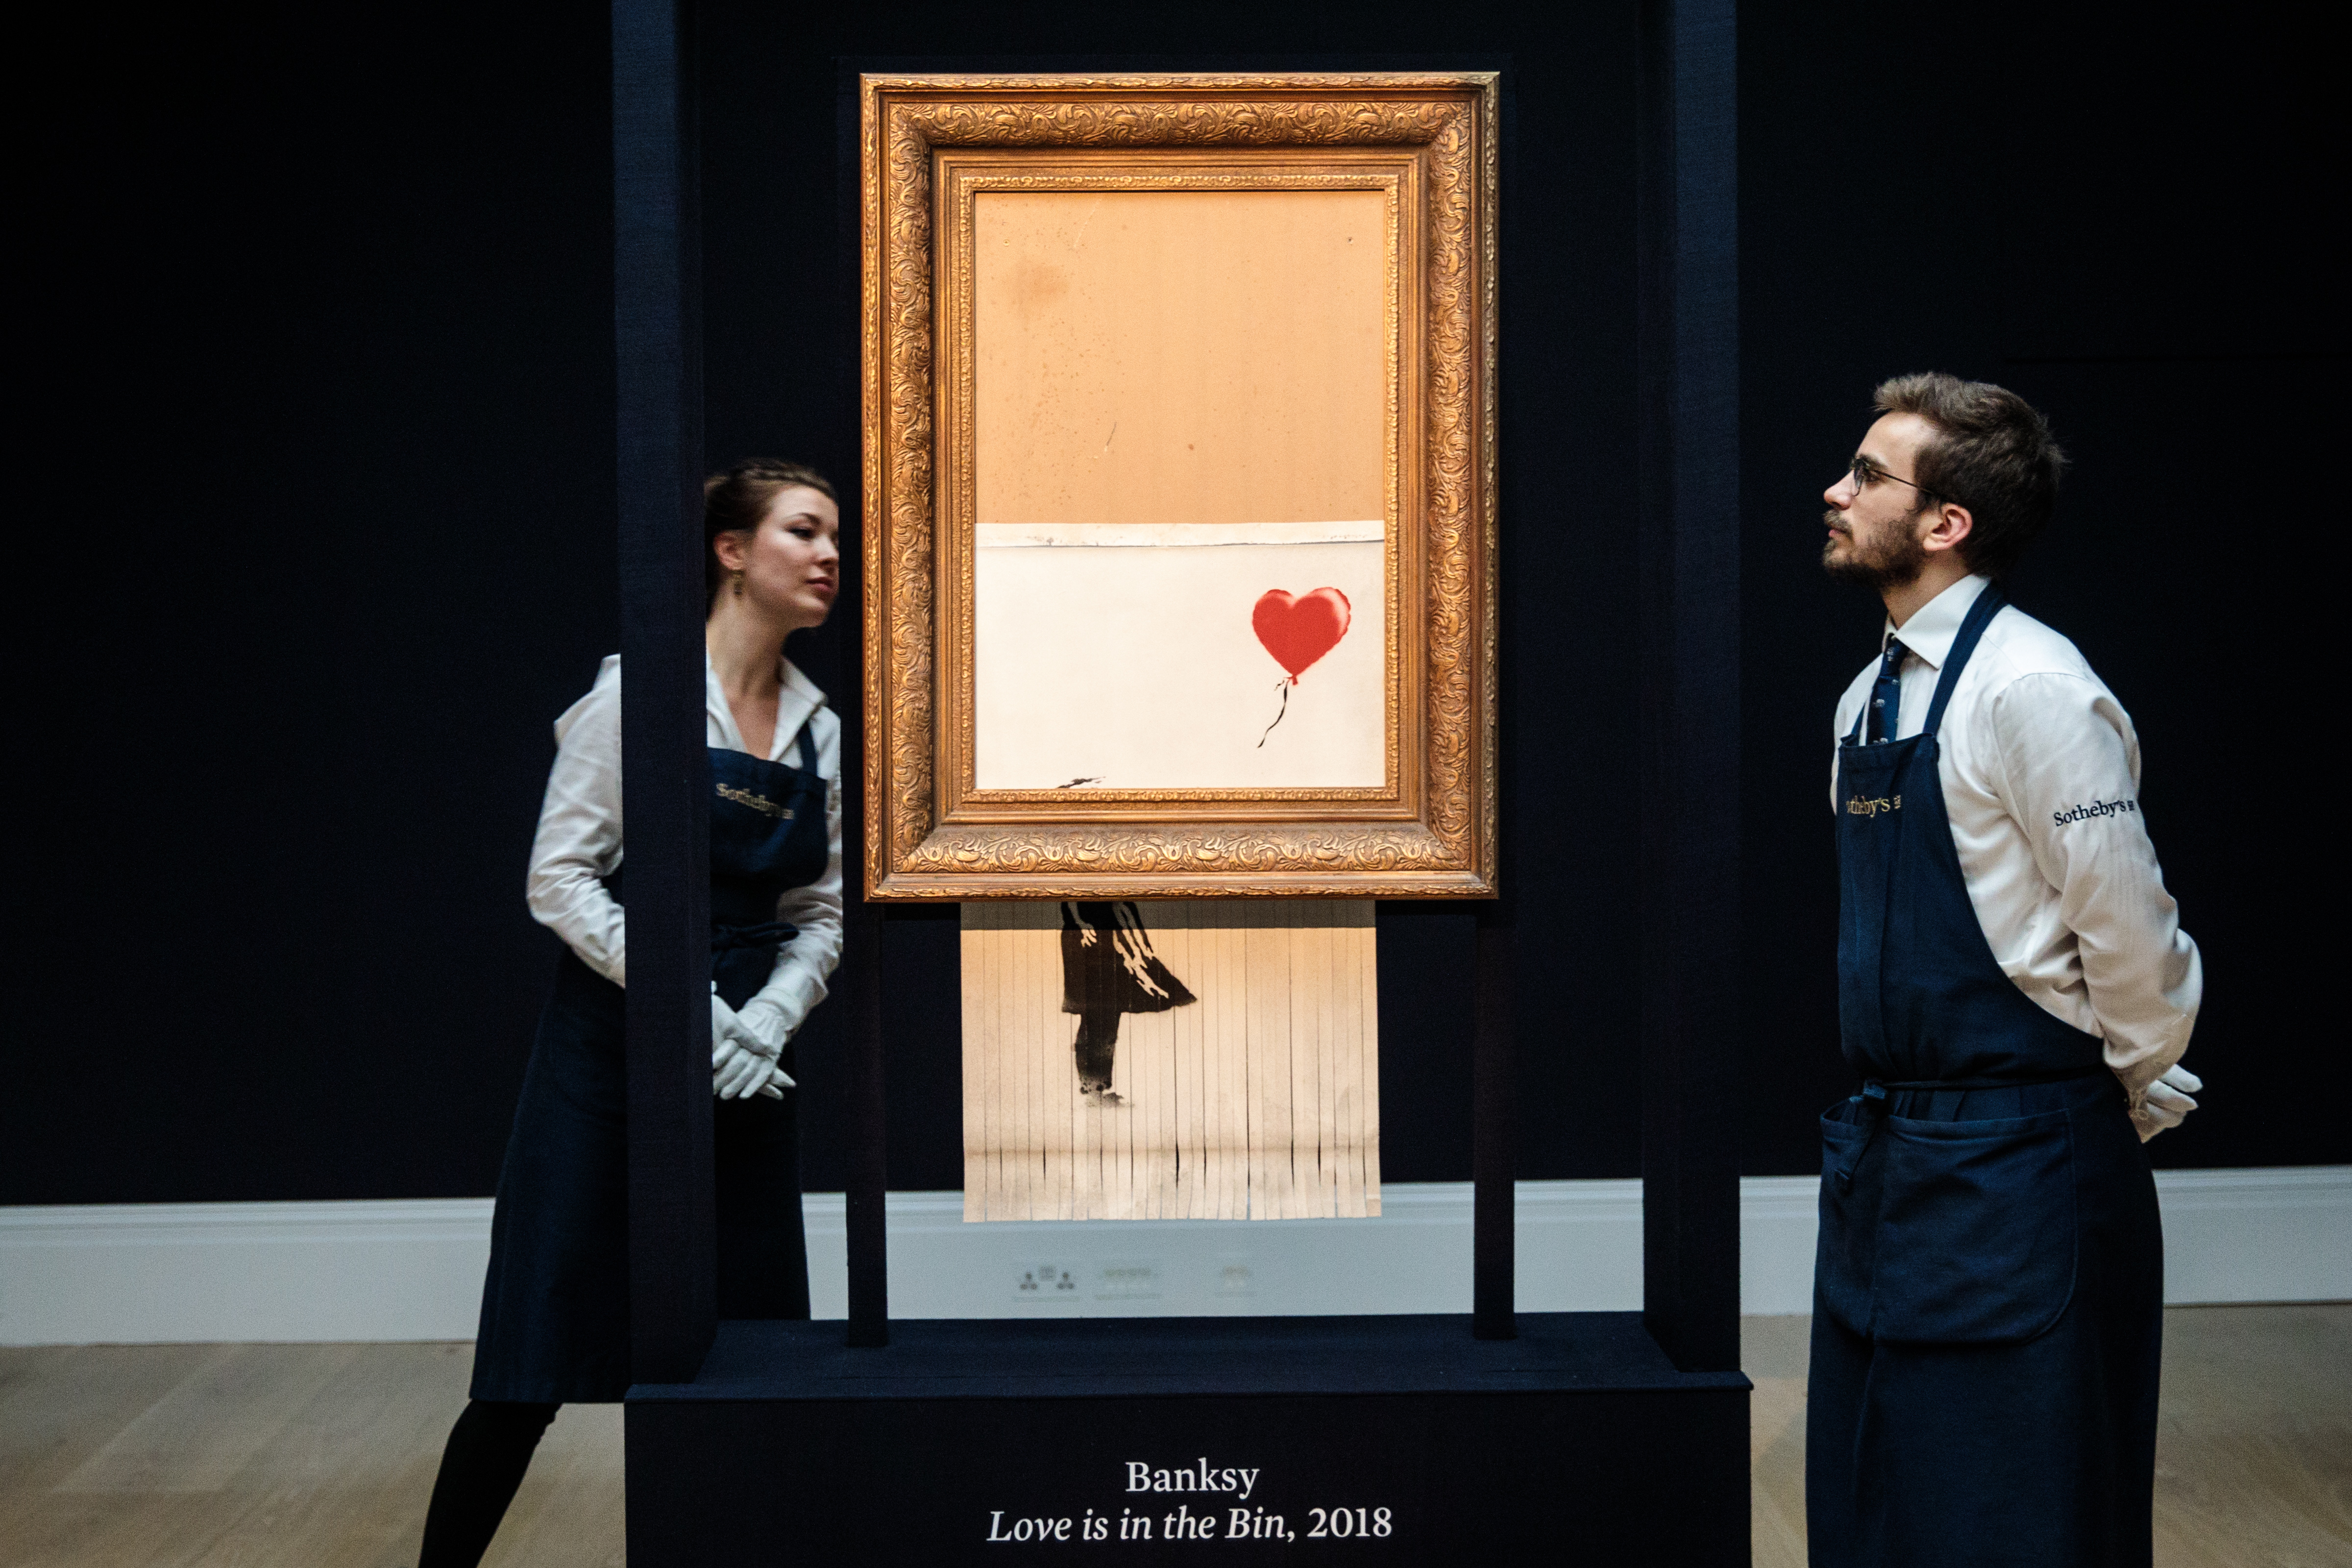 Sotheby's employees view 'Love is in the Bin' by British artist Banksy during a media preview at Sotheby's auction house in London, United Kingdom. (Photo by Jack Taylor/Getty Images)